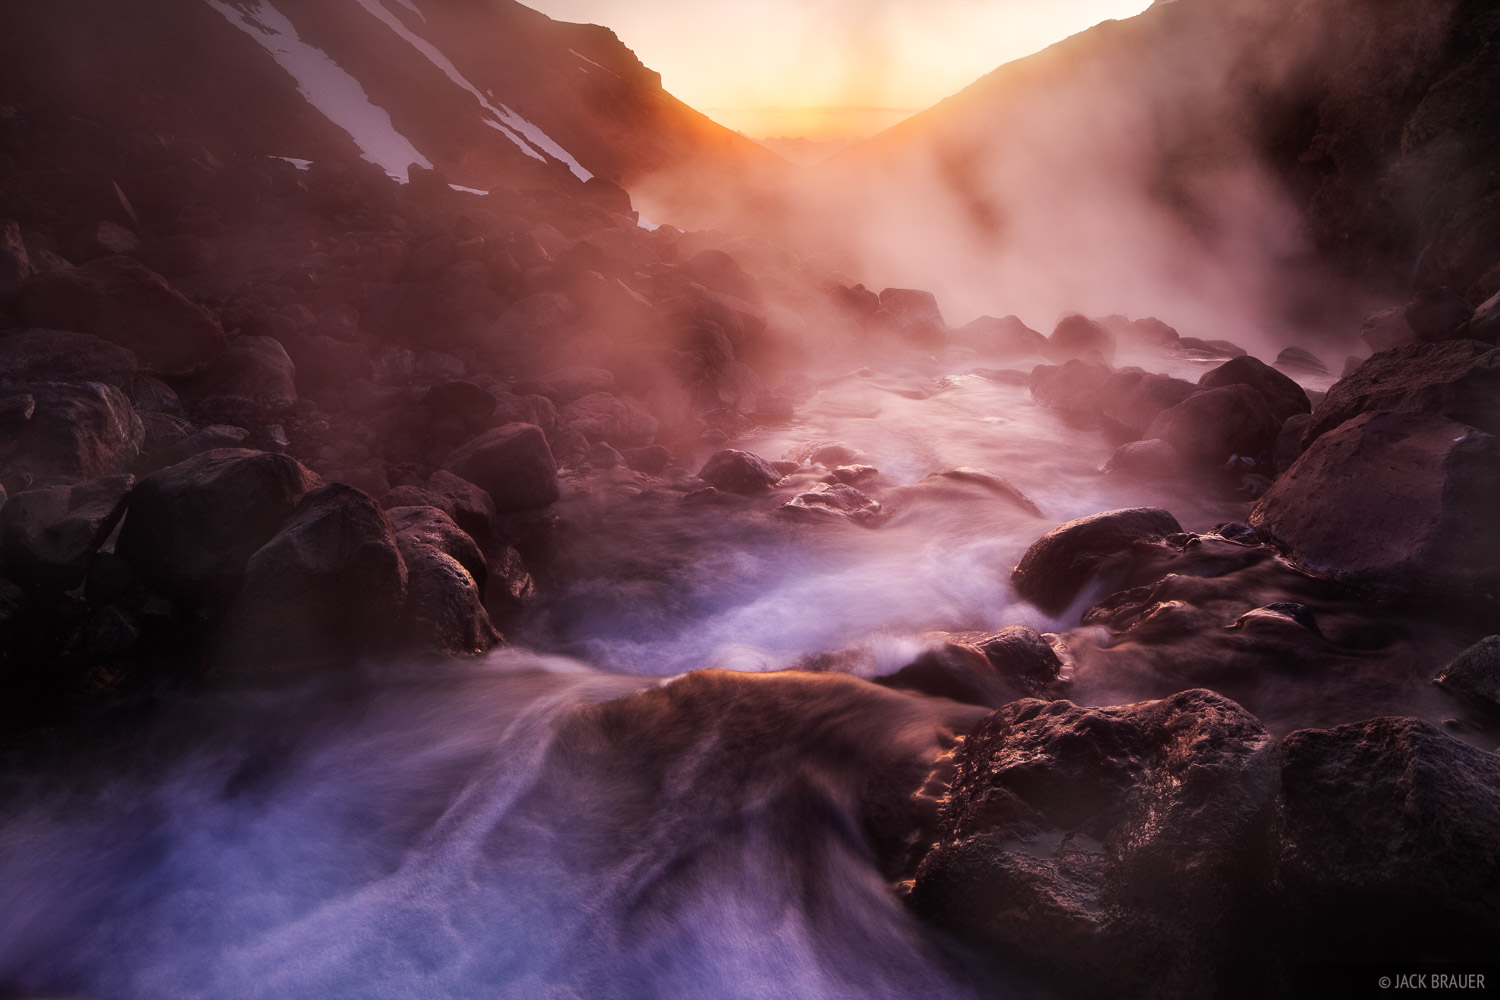 The hot springs rivers in Valle de Aguas Calientes steam in the cool dusk air. The water here is scalding hot, though a...